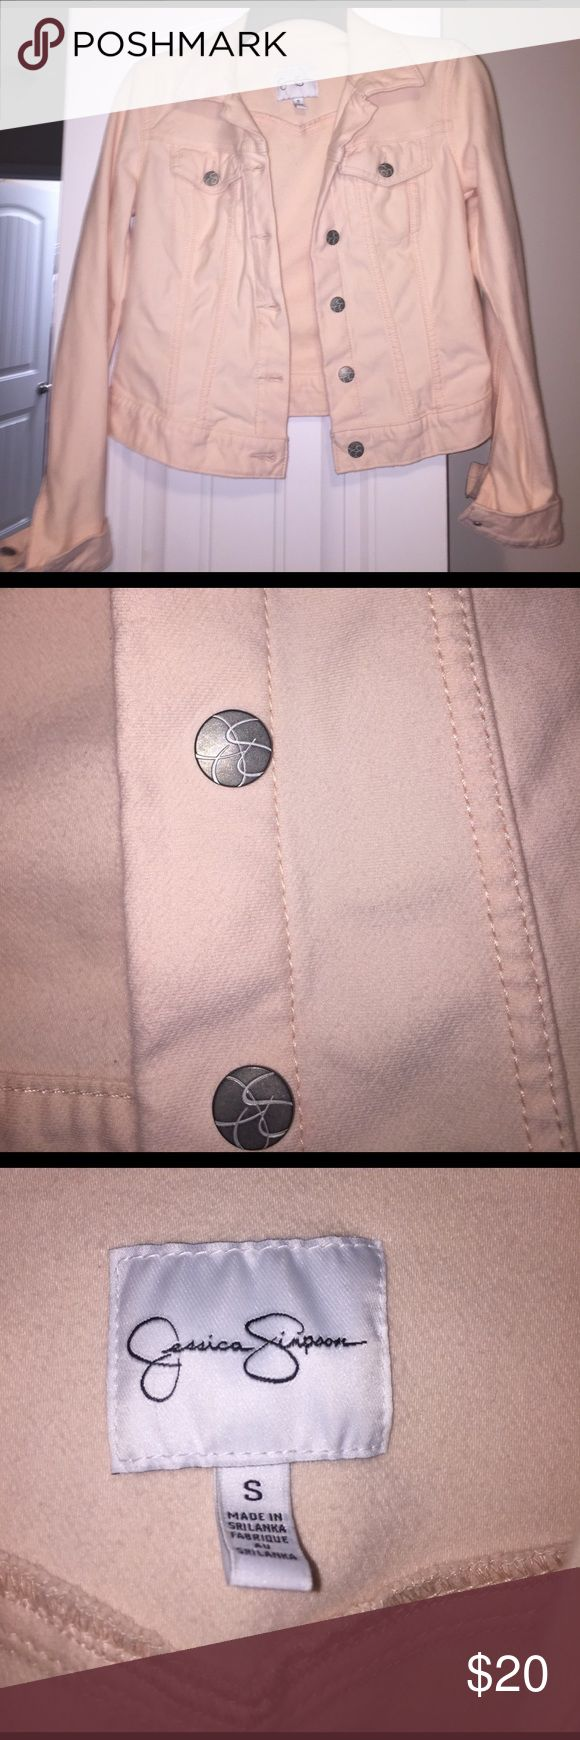 Coral Crop jacket Jessica Simpson Only worn two times, no signs of wear, the picture doesn't do it justice! It's adorable with dresses! Great color! Jessica Simpson Jackets & Coats Jean Jackets